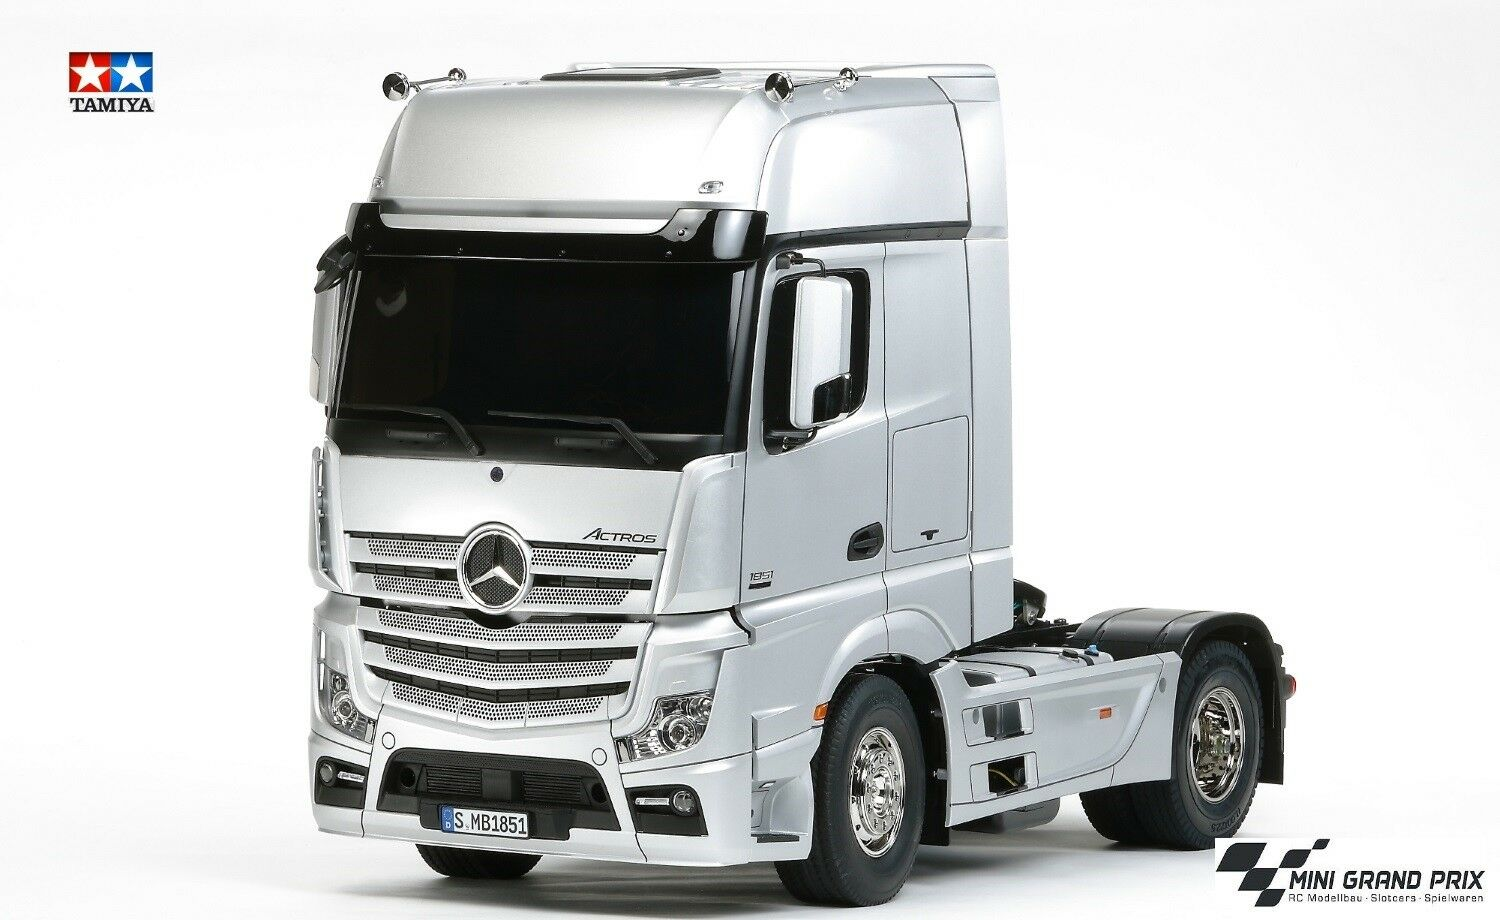 Tamiya 1 14 1 14 RC Mercedes Benz Actros 1851 GigaSpace Kit 56335